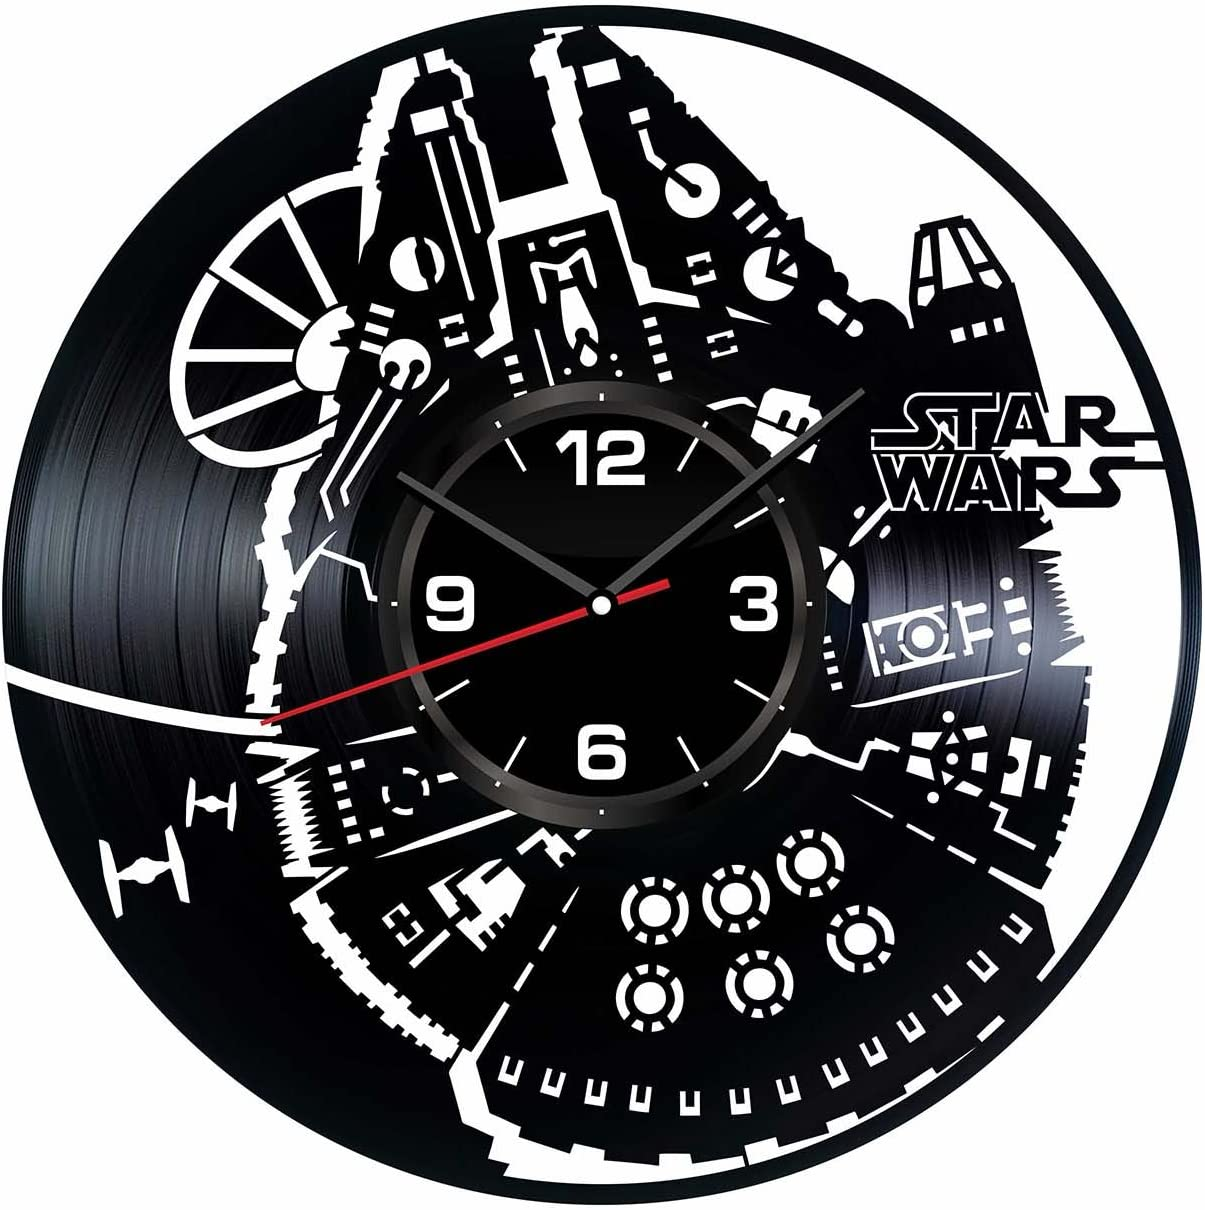 Star Wars Millennium Falcon Wall Clock Made of Vintage Vinyl Records - Stylish clock and Amazing Gifts Idea – Unique Home Decor – Personalized Presents for Men Women – Living Room Art – Handmade 12 In